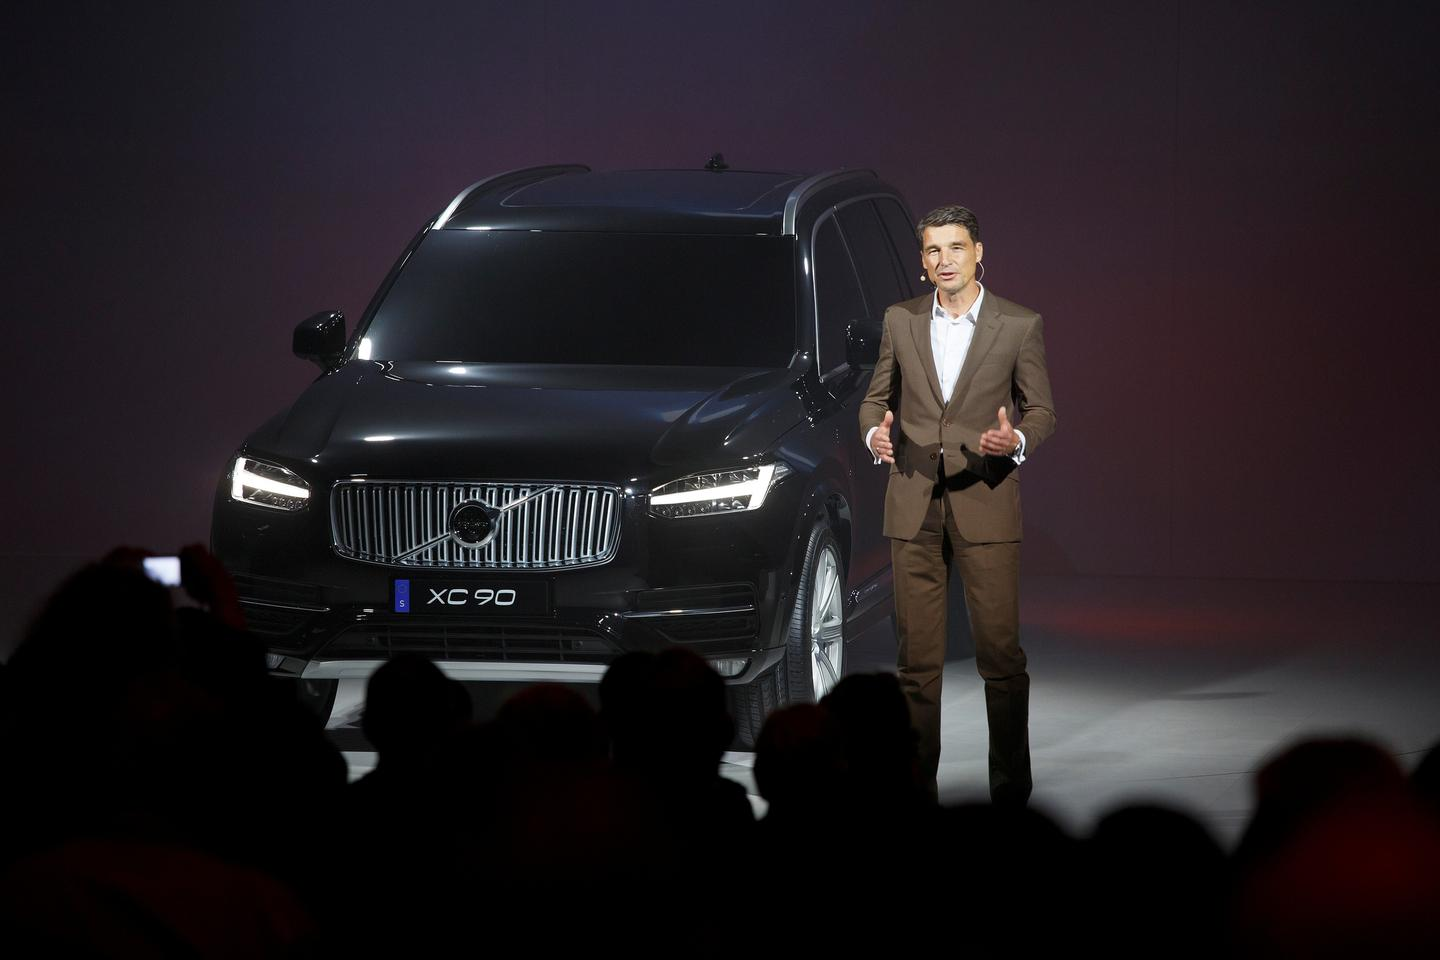 Volvo President and CEO Håkan Samuelsson is calling the XC90's launch one of the most important days in the company's history